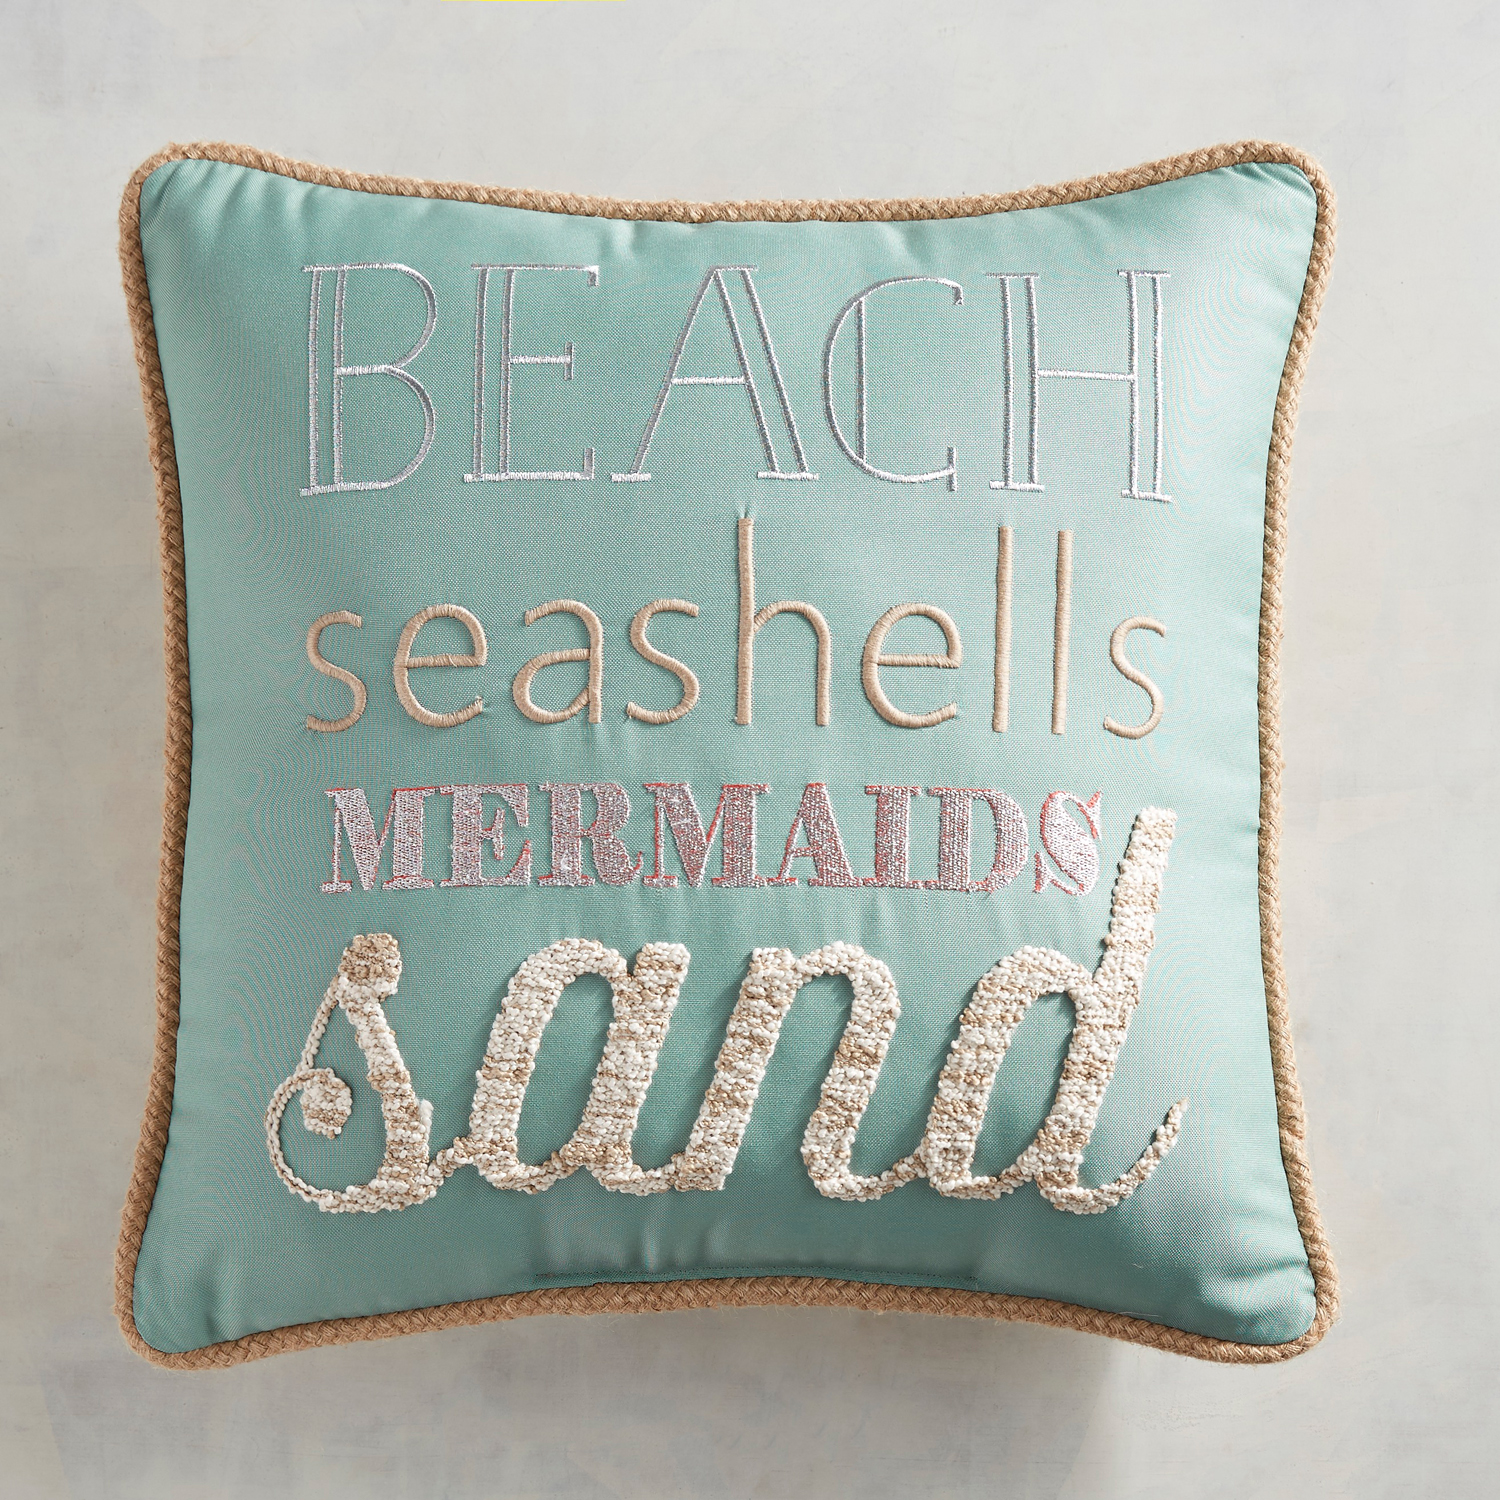 Embroidered Beachy Sentiment Pillow